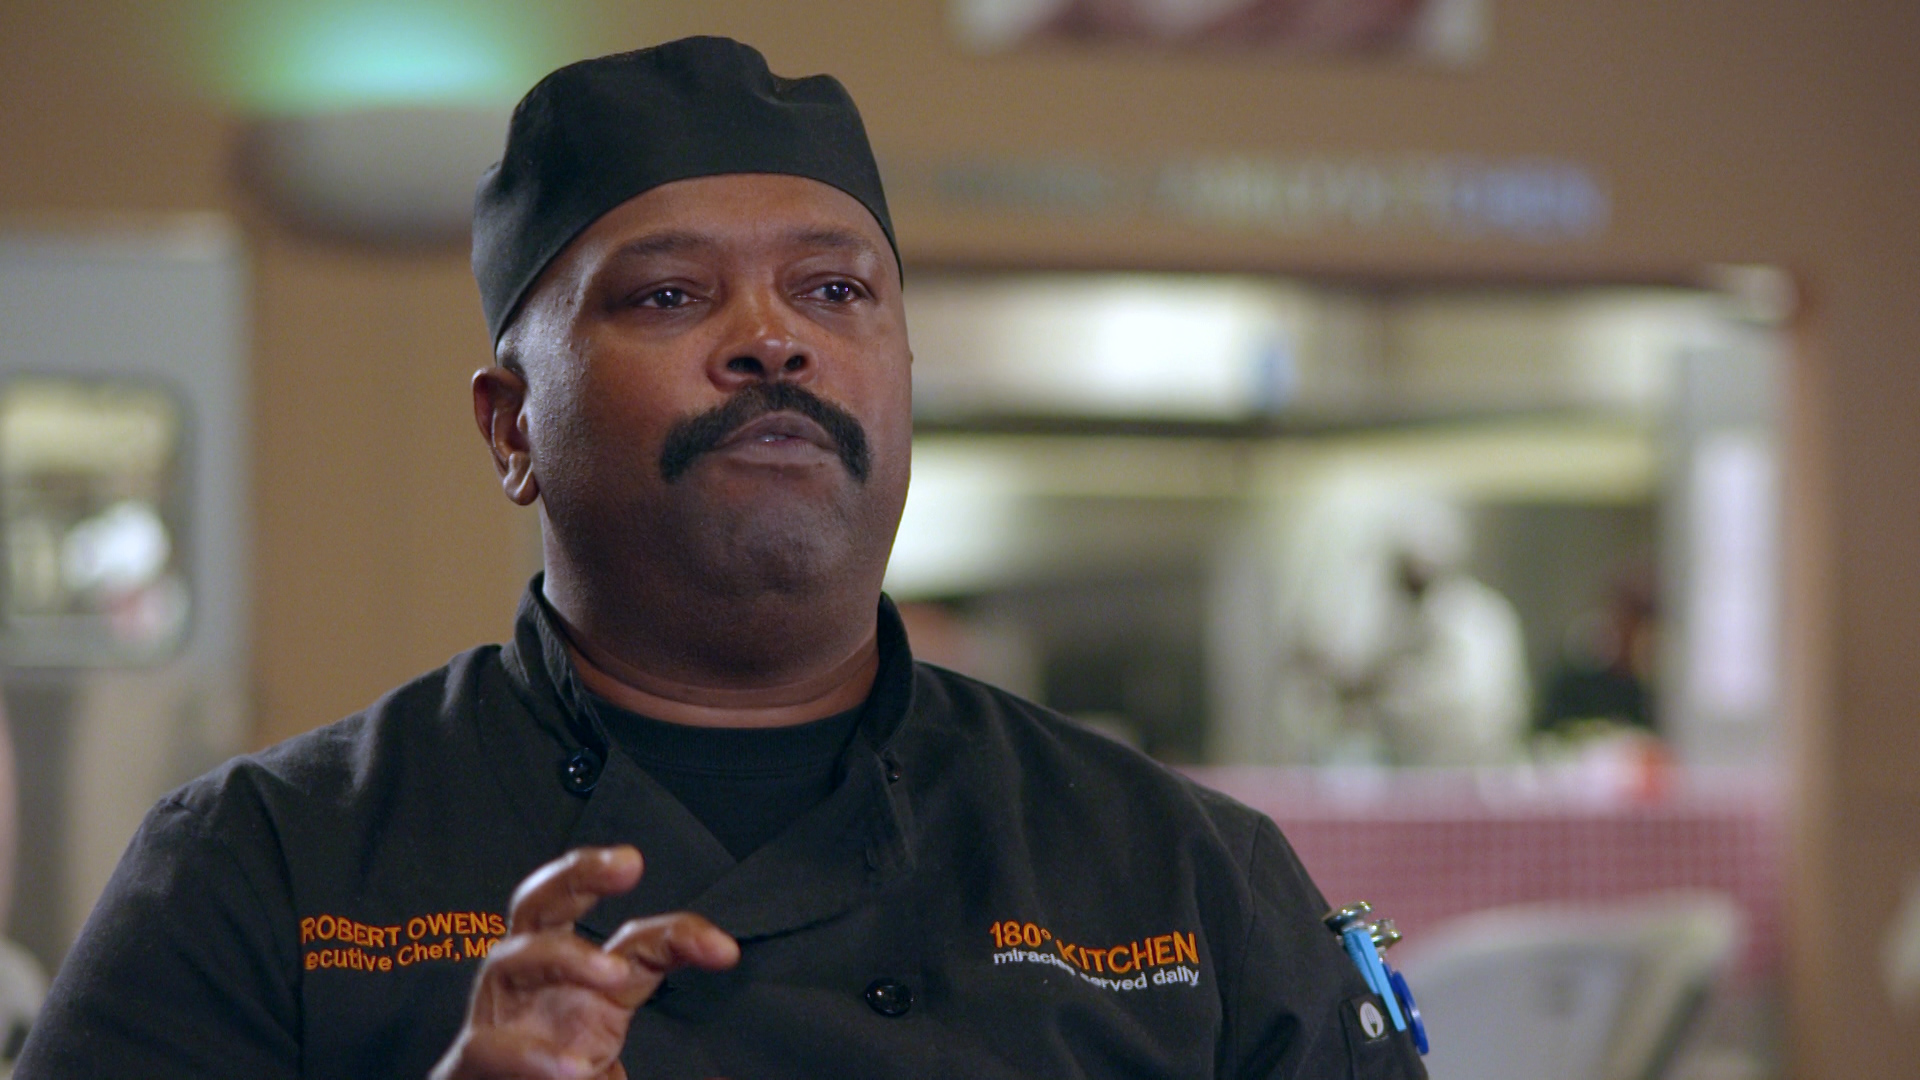 Production still from Reality Show of Chef Robert Owens from 180 Kitchen